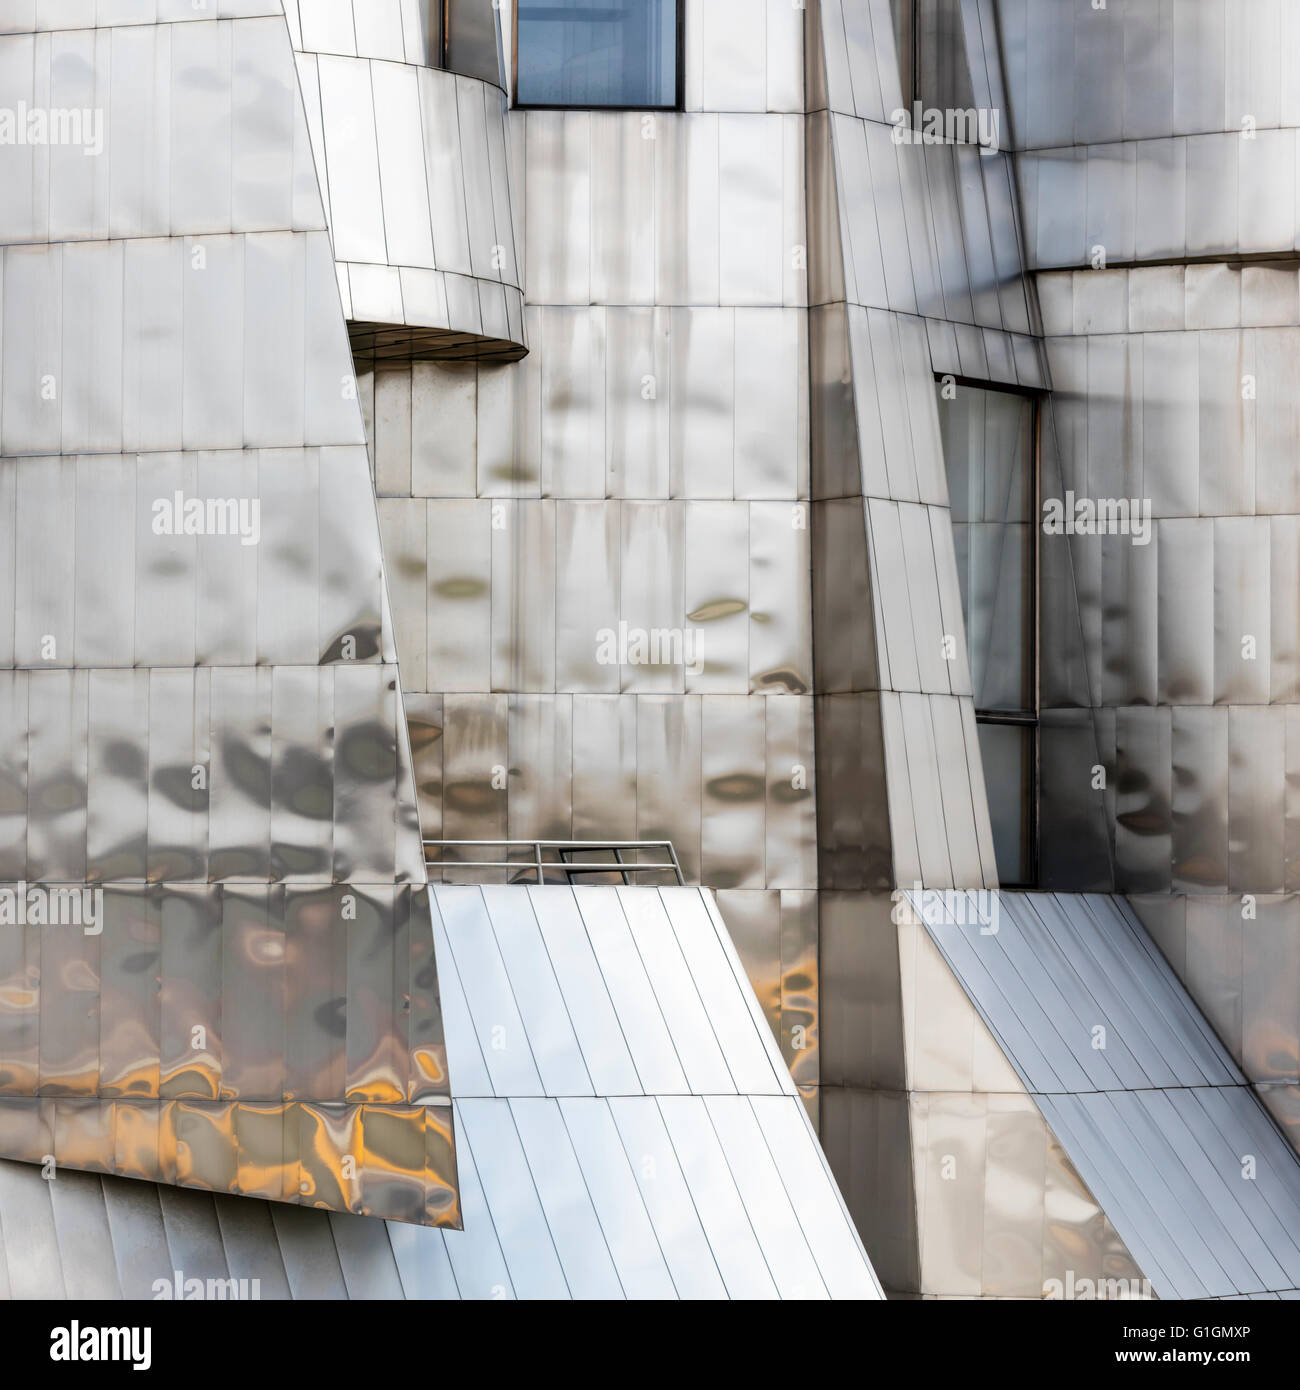 Detail of Frederick R. Wiseman Art Museum, University of Minnesota, Minneapolis. Designed by Frank Gehry - Stock Image